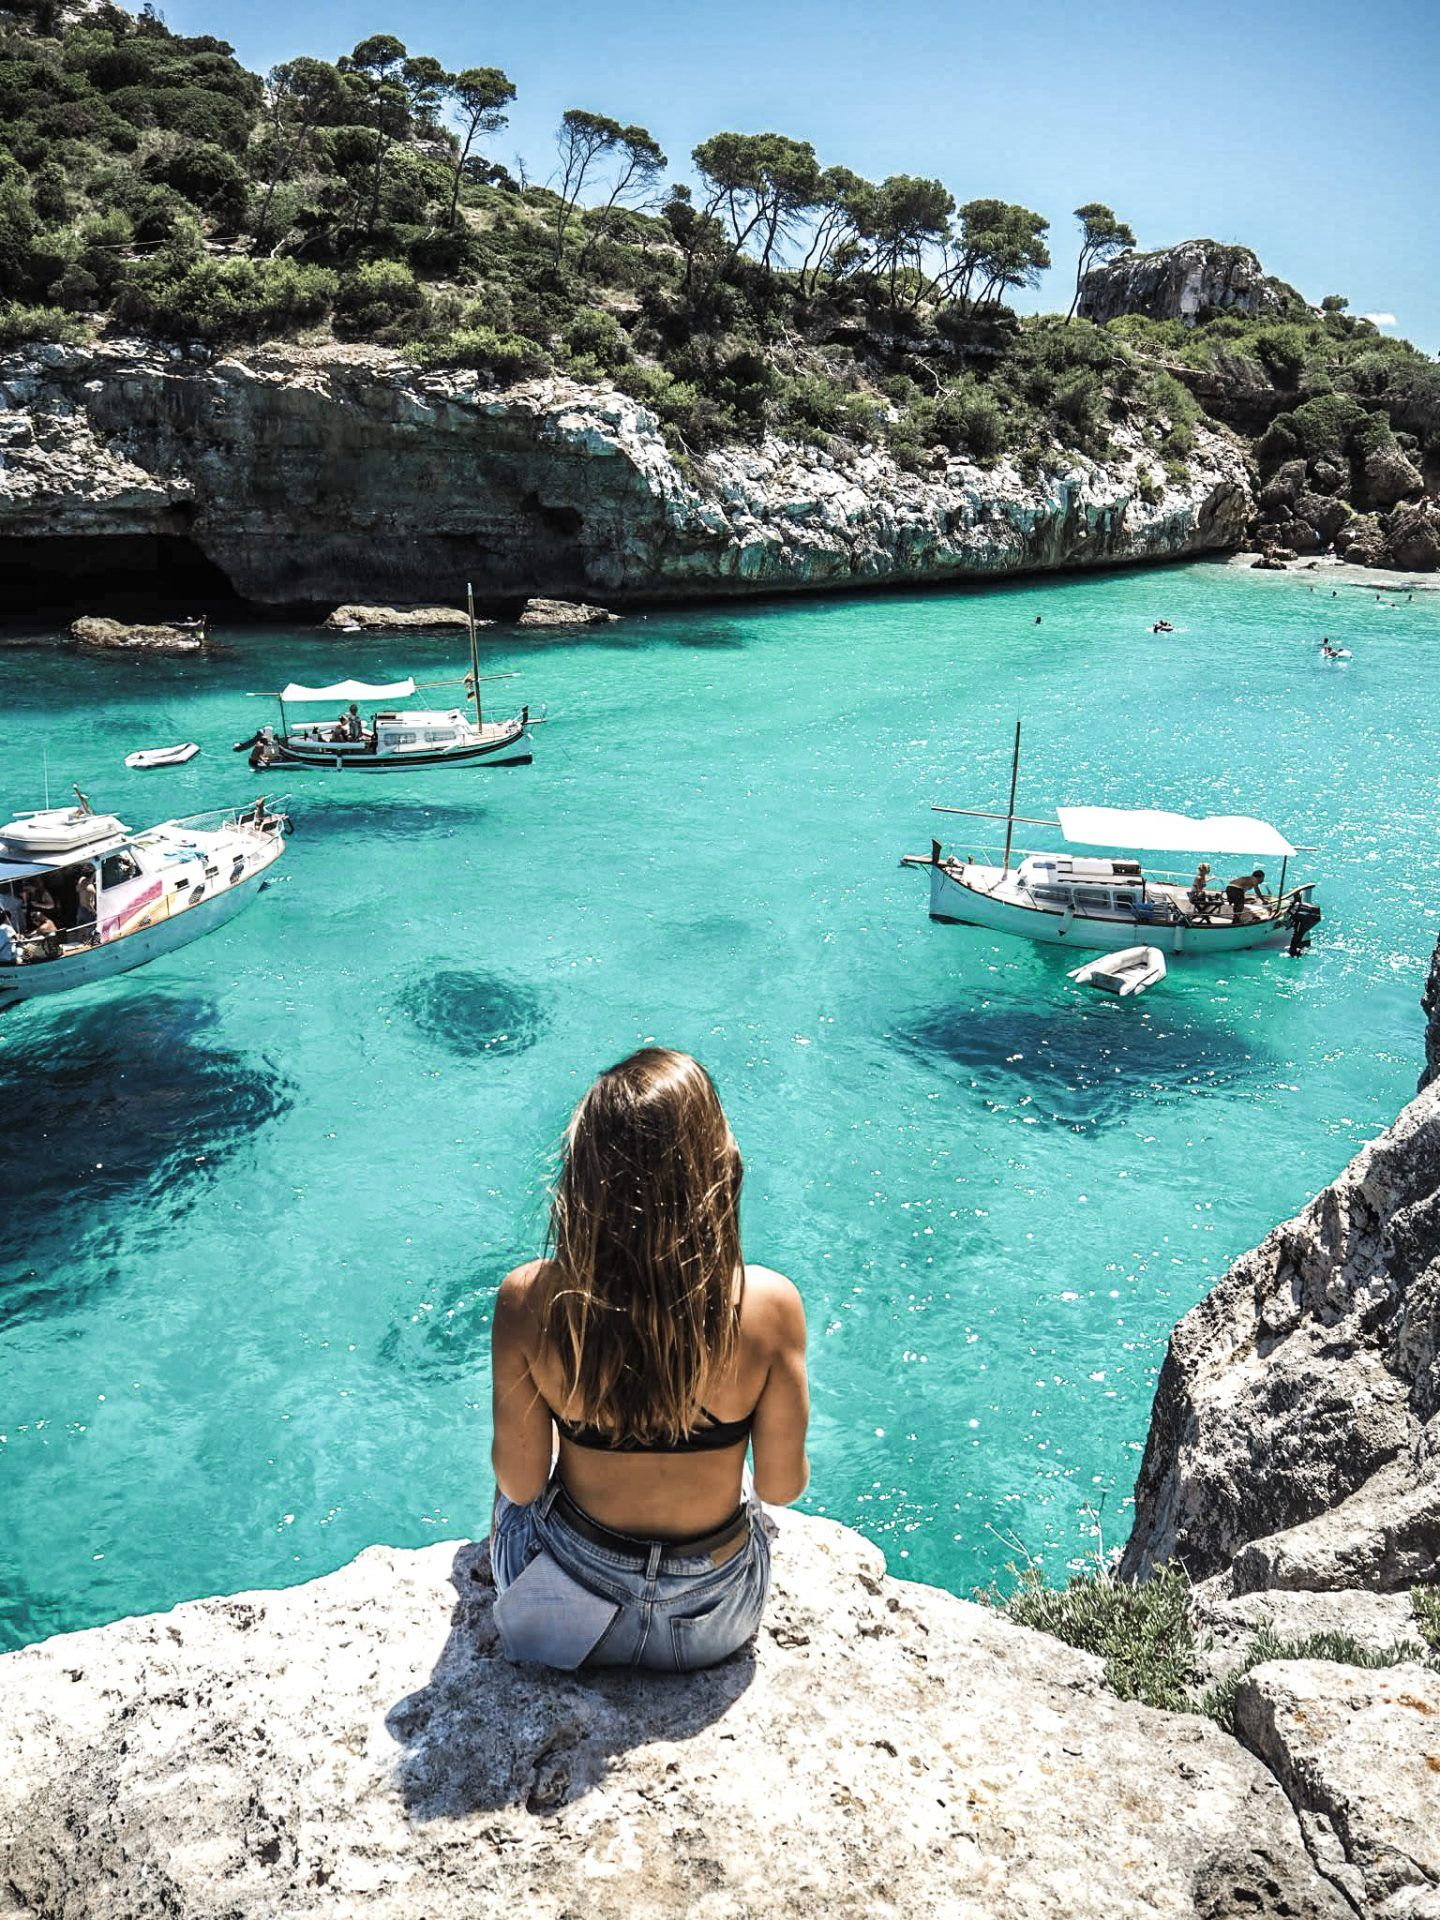 My Favorite Place In Spain – Mallorca